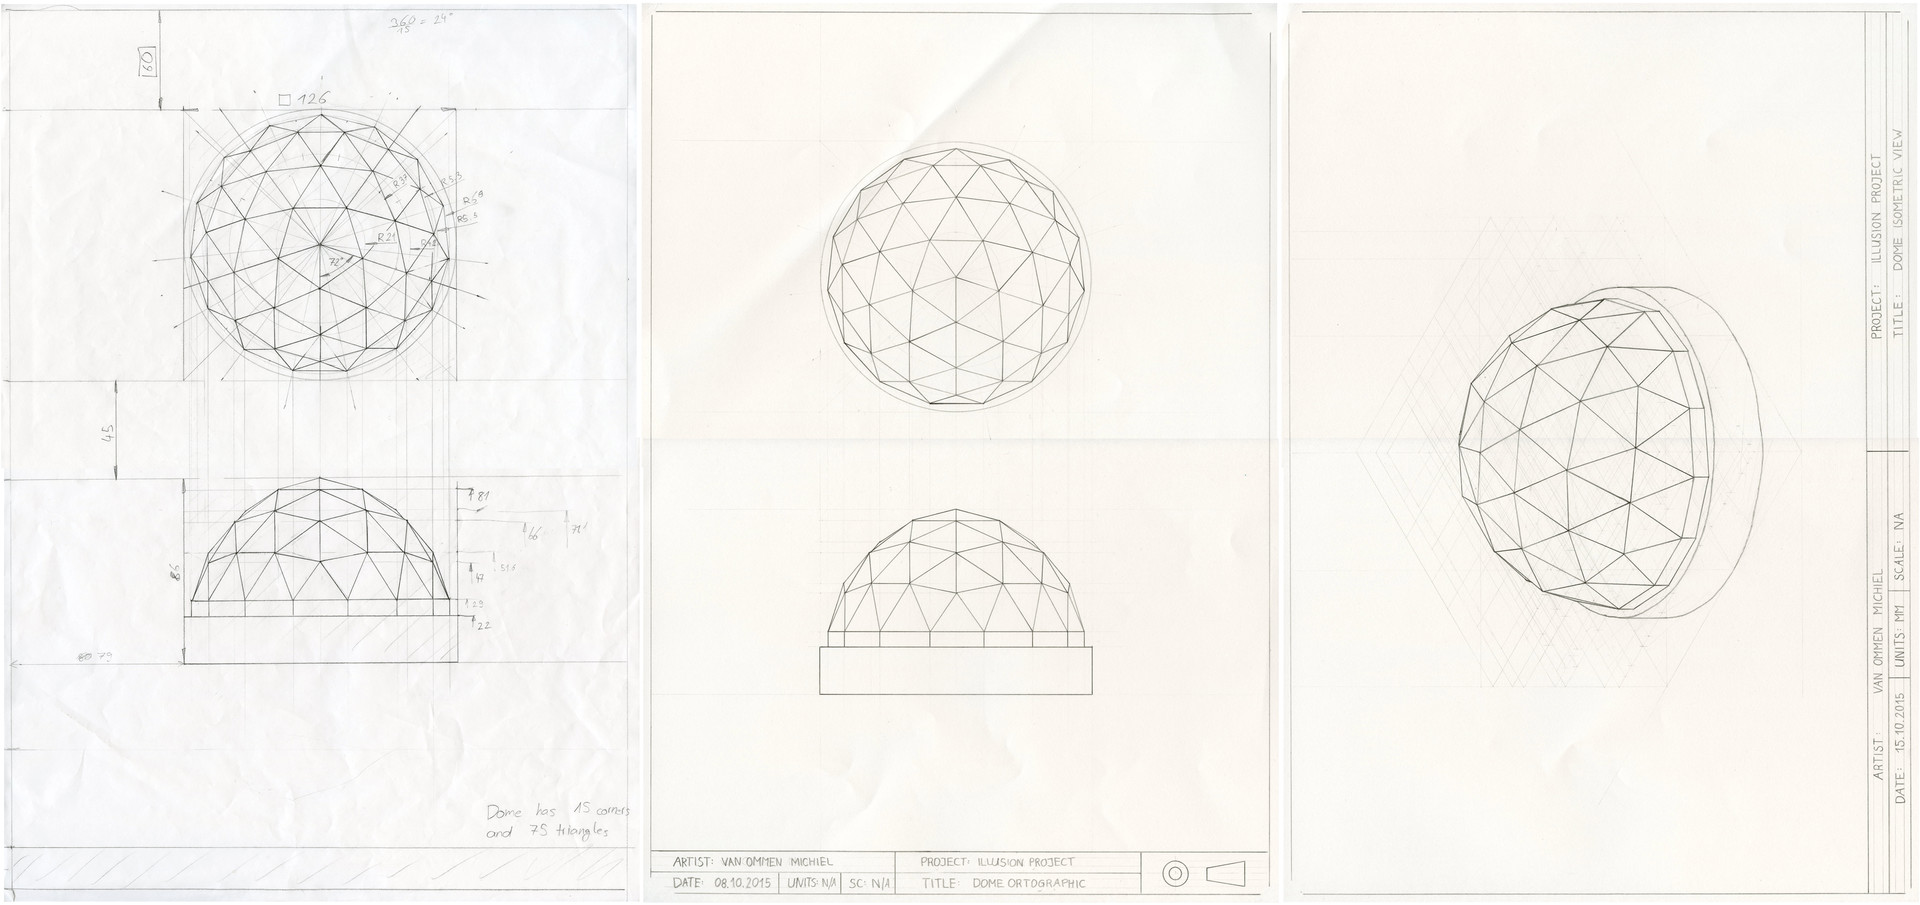 Process of creating a dome made out of triangles - from sketch to isometric